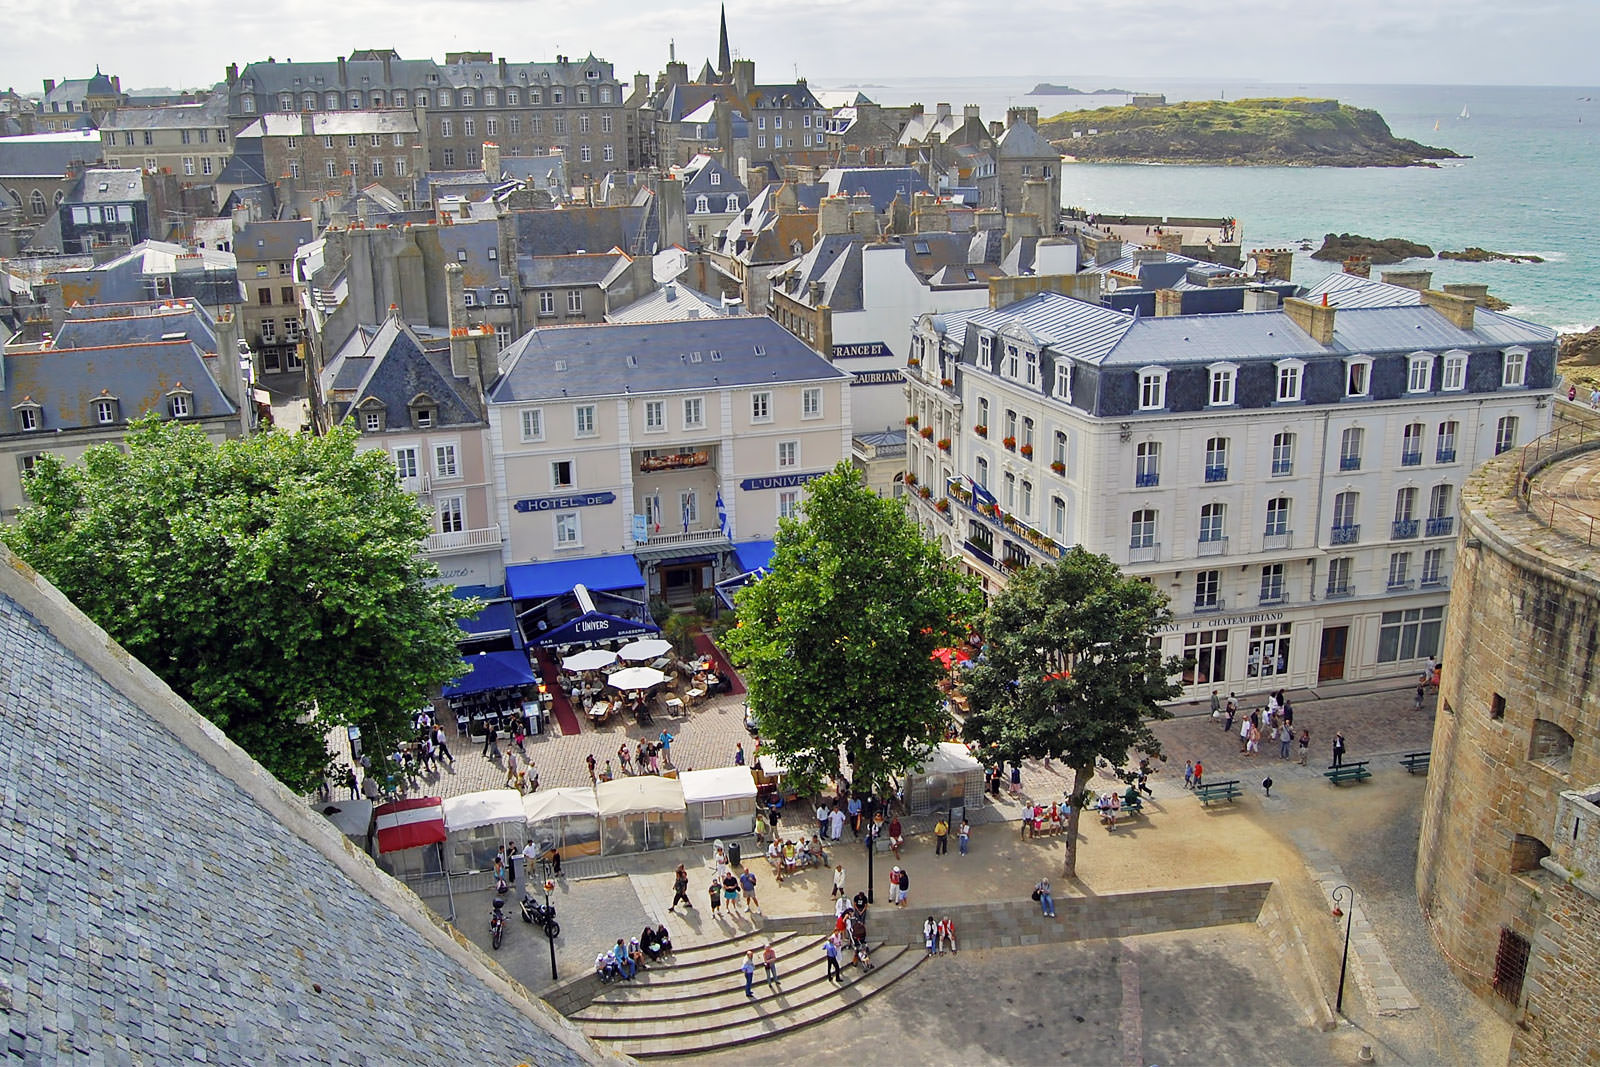 10 Best Things to Do in Saint-Malo - What is Saint-Malo Most ... Saint Malo Brittany France World Maps on saint-malo france and doerr, saint-malo france money, saint laurent gulf map, normandy brittany france map, saint-malo france during wwii, st malo map, nantes brittany france map, san malo map, morbihan brittany france map,